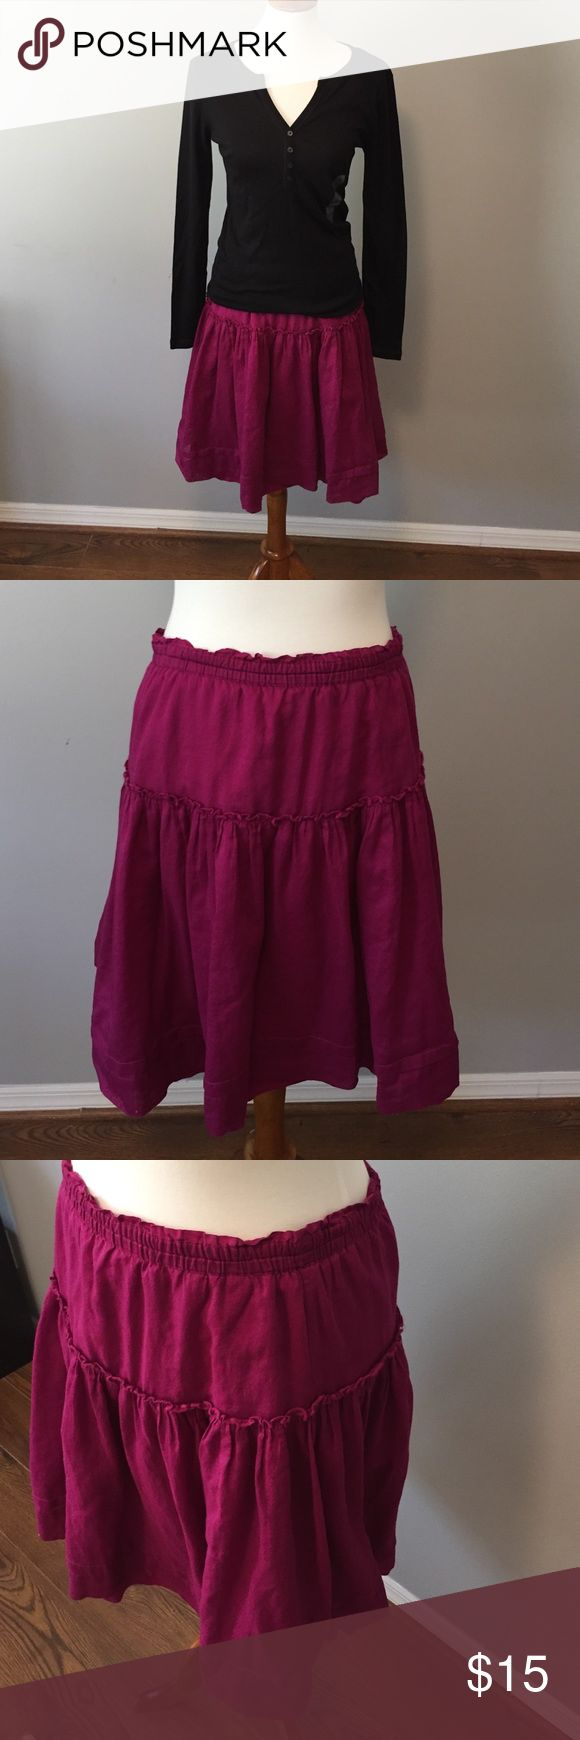 Gap skirt Flirty skirt with an elastic waist and flowy, lightweight material.  Great with a simple black or white t-shirt or sweater for a casual but cute look. GAP Skirts Midi